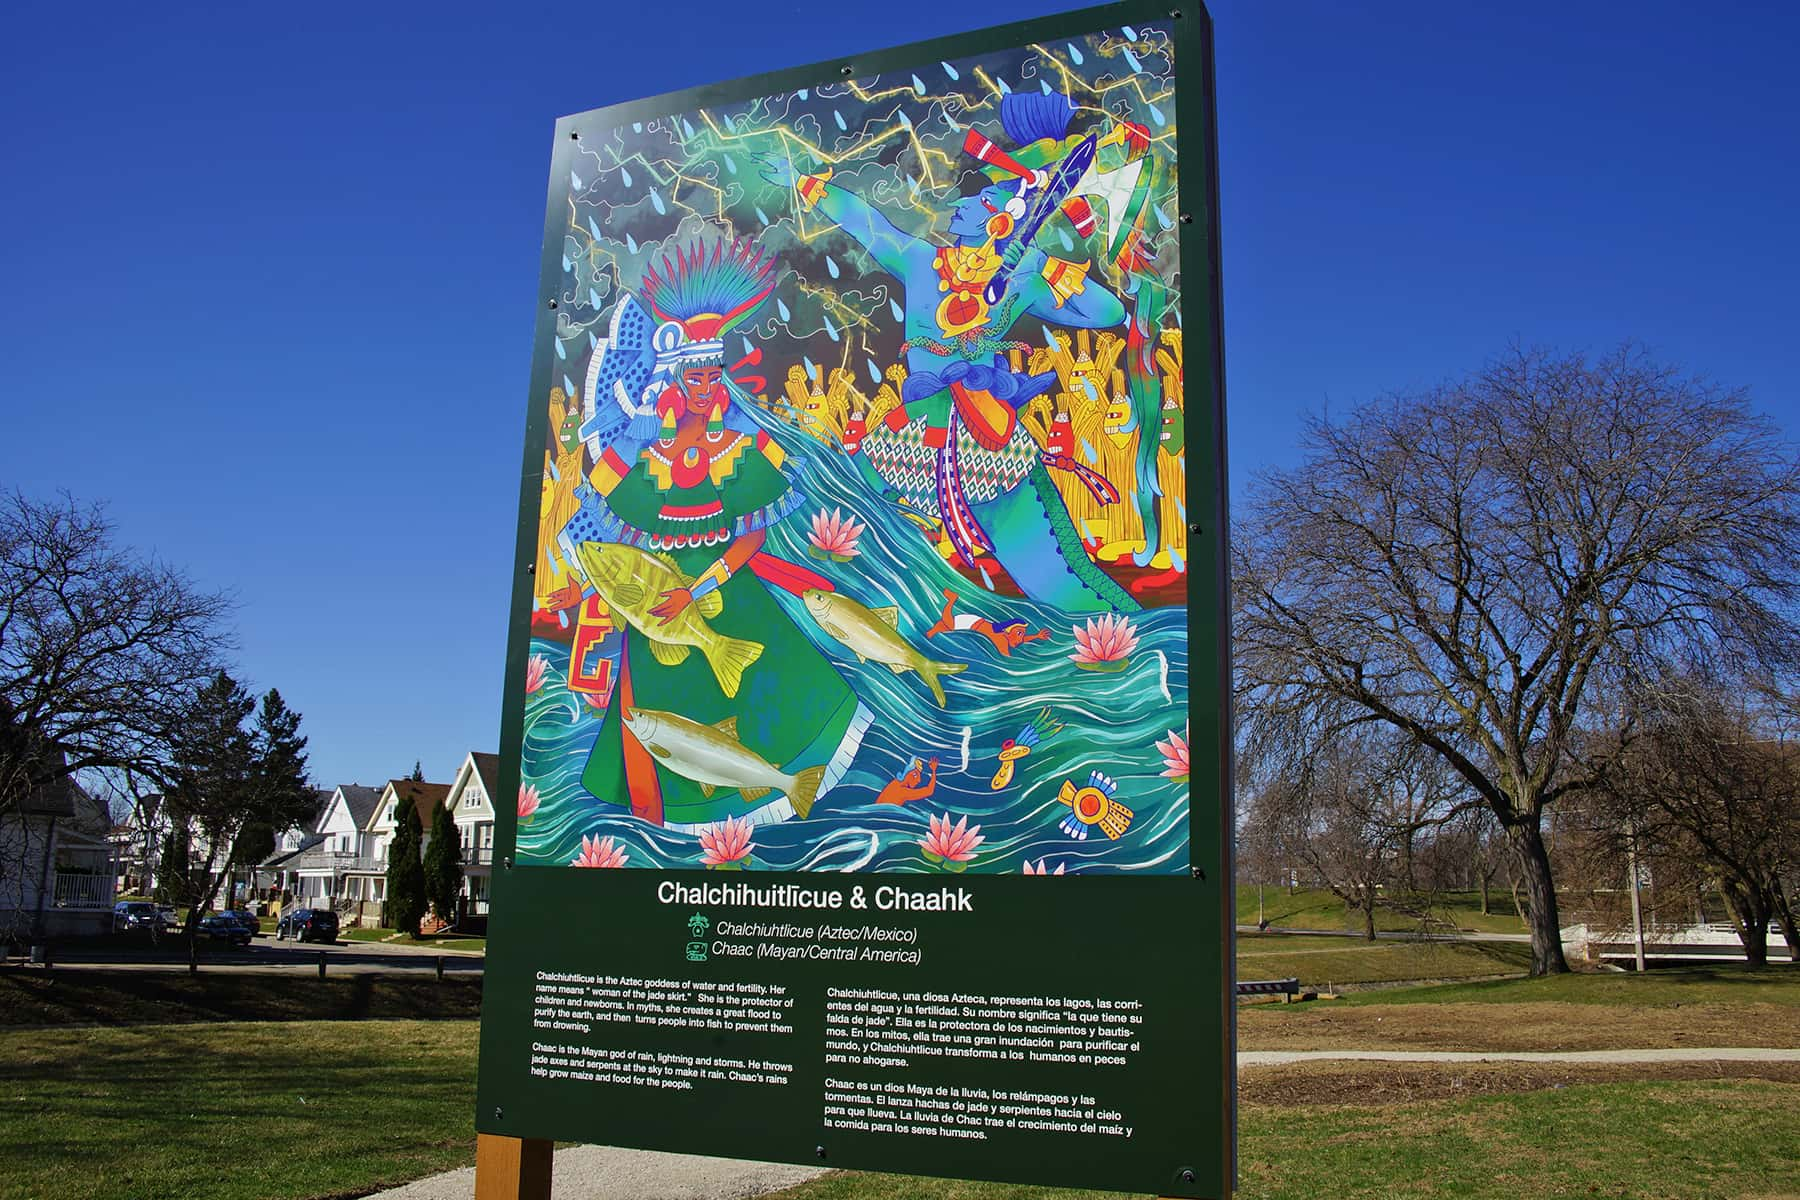 Art display of River Deities reflect immigrant cultures that